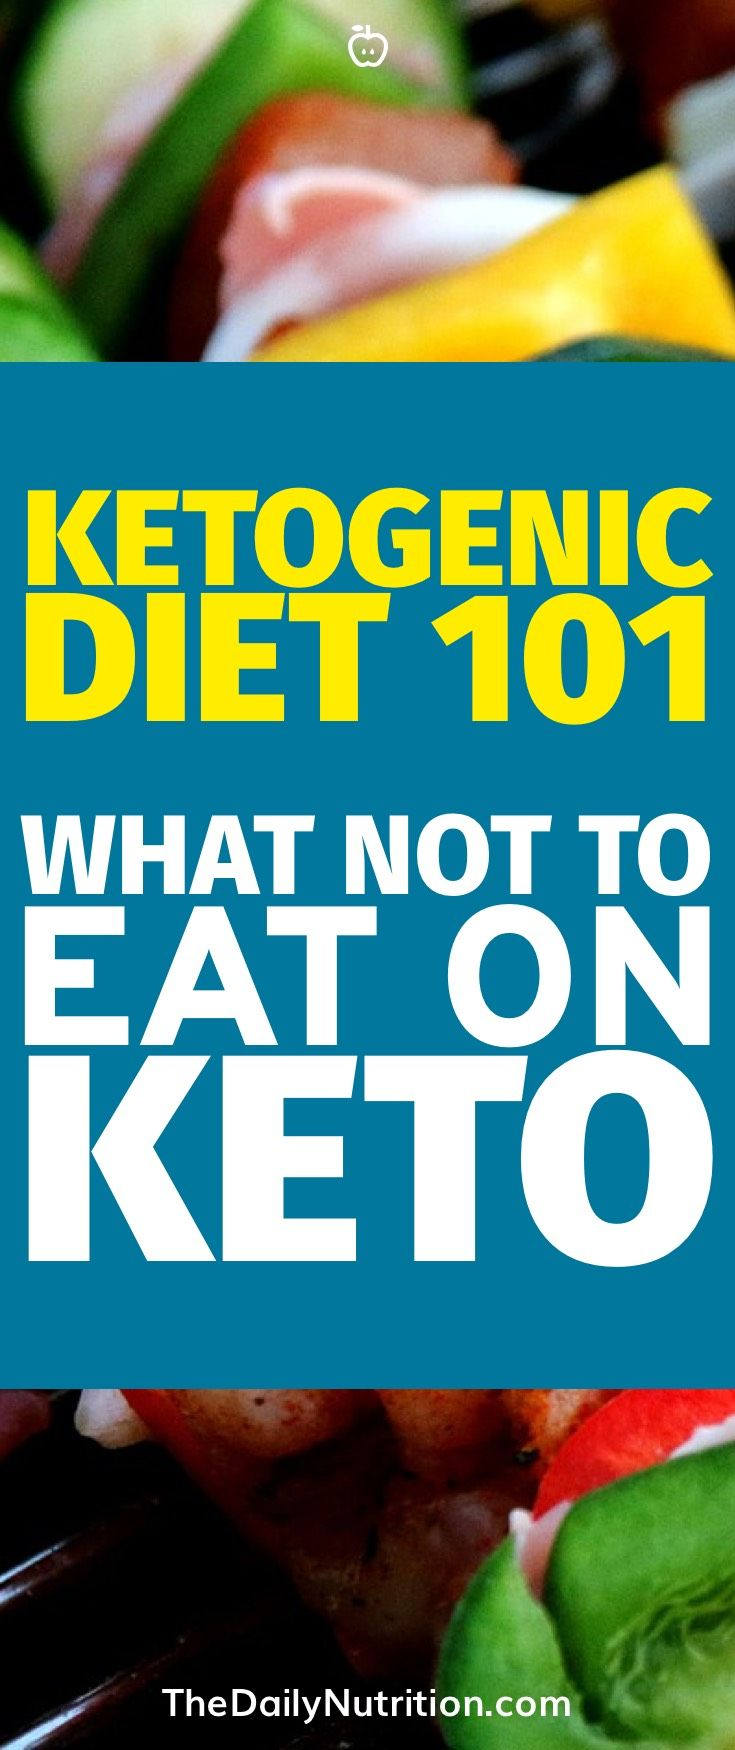 Is it possible to stay on ketogenic diet for life-long?